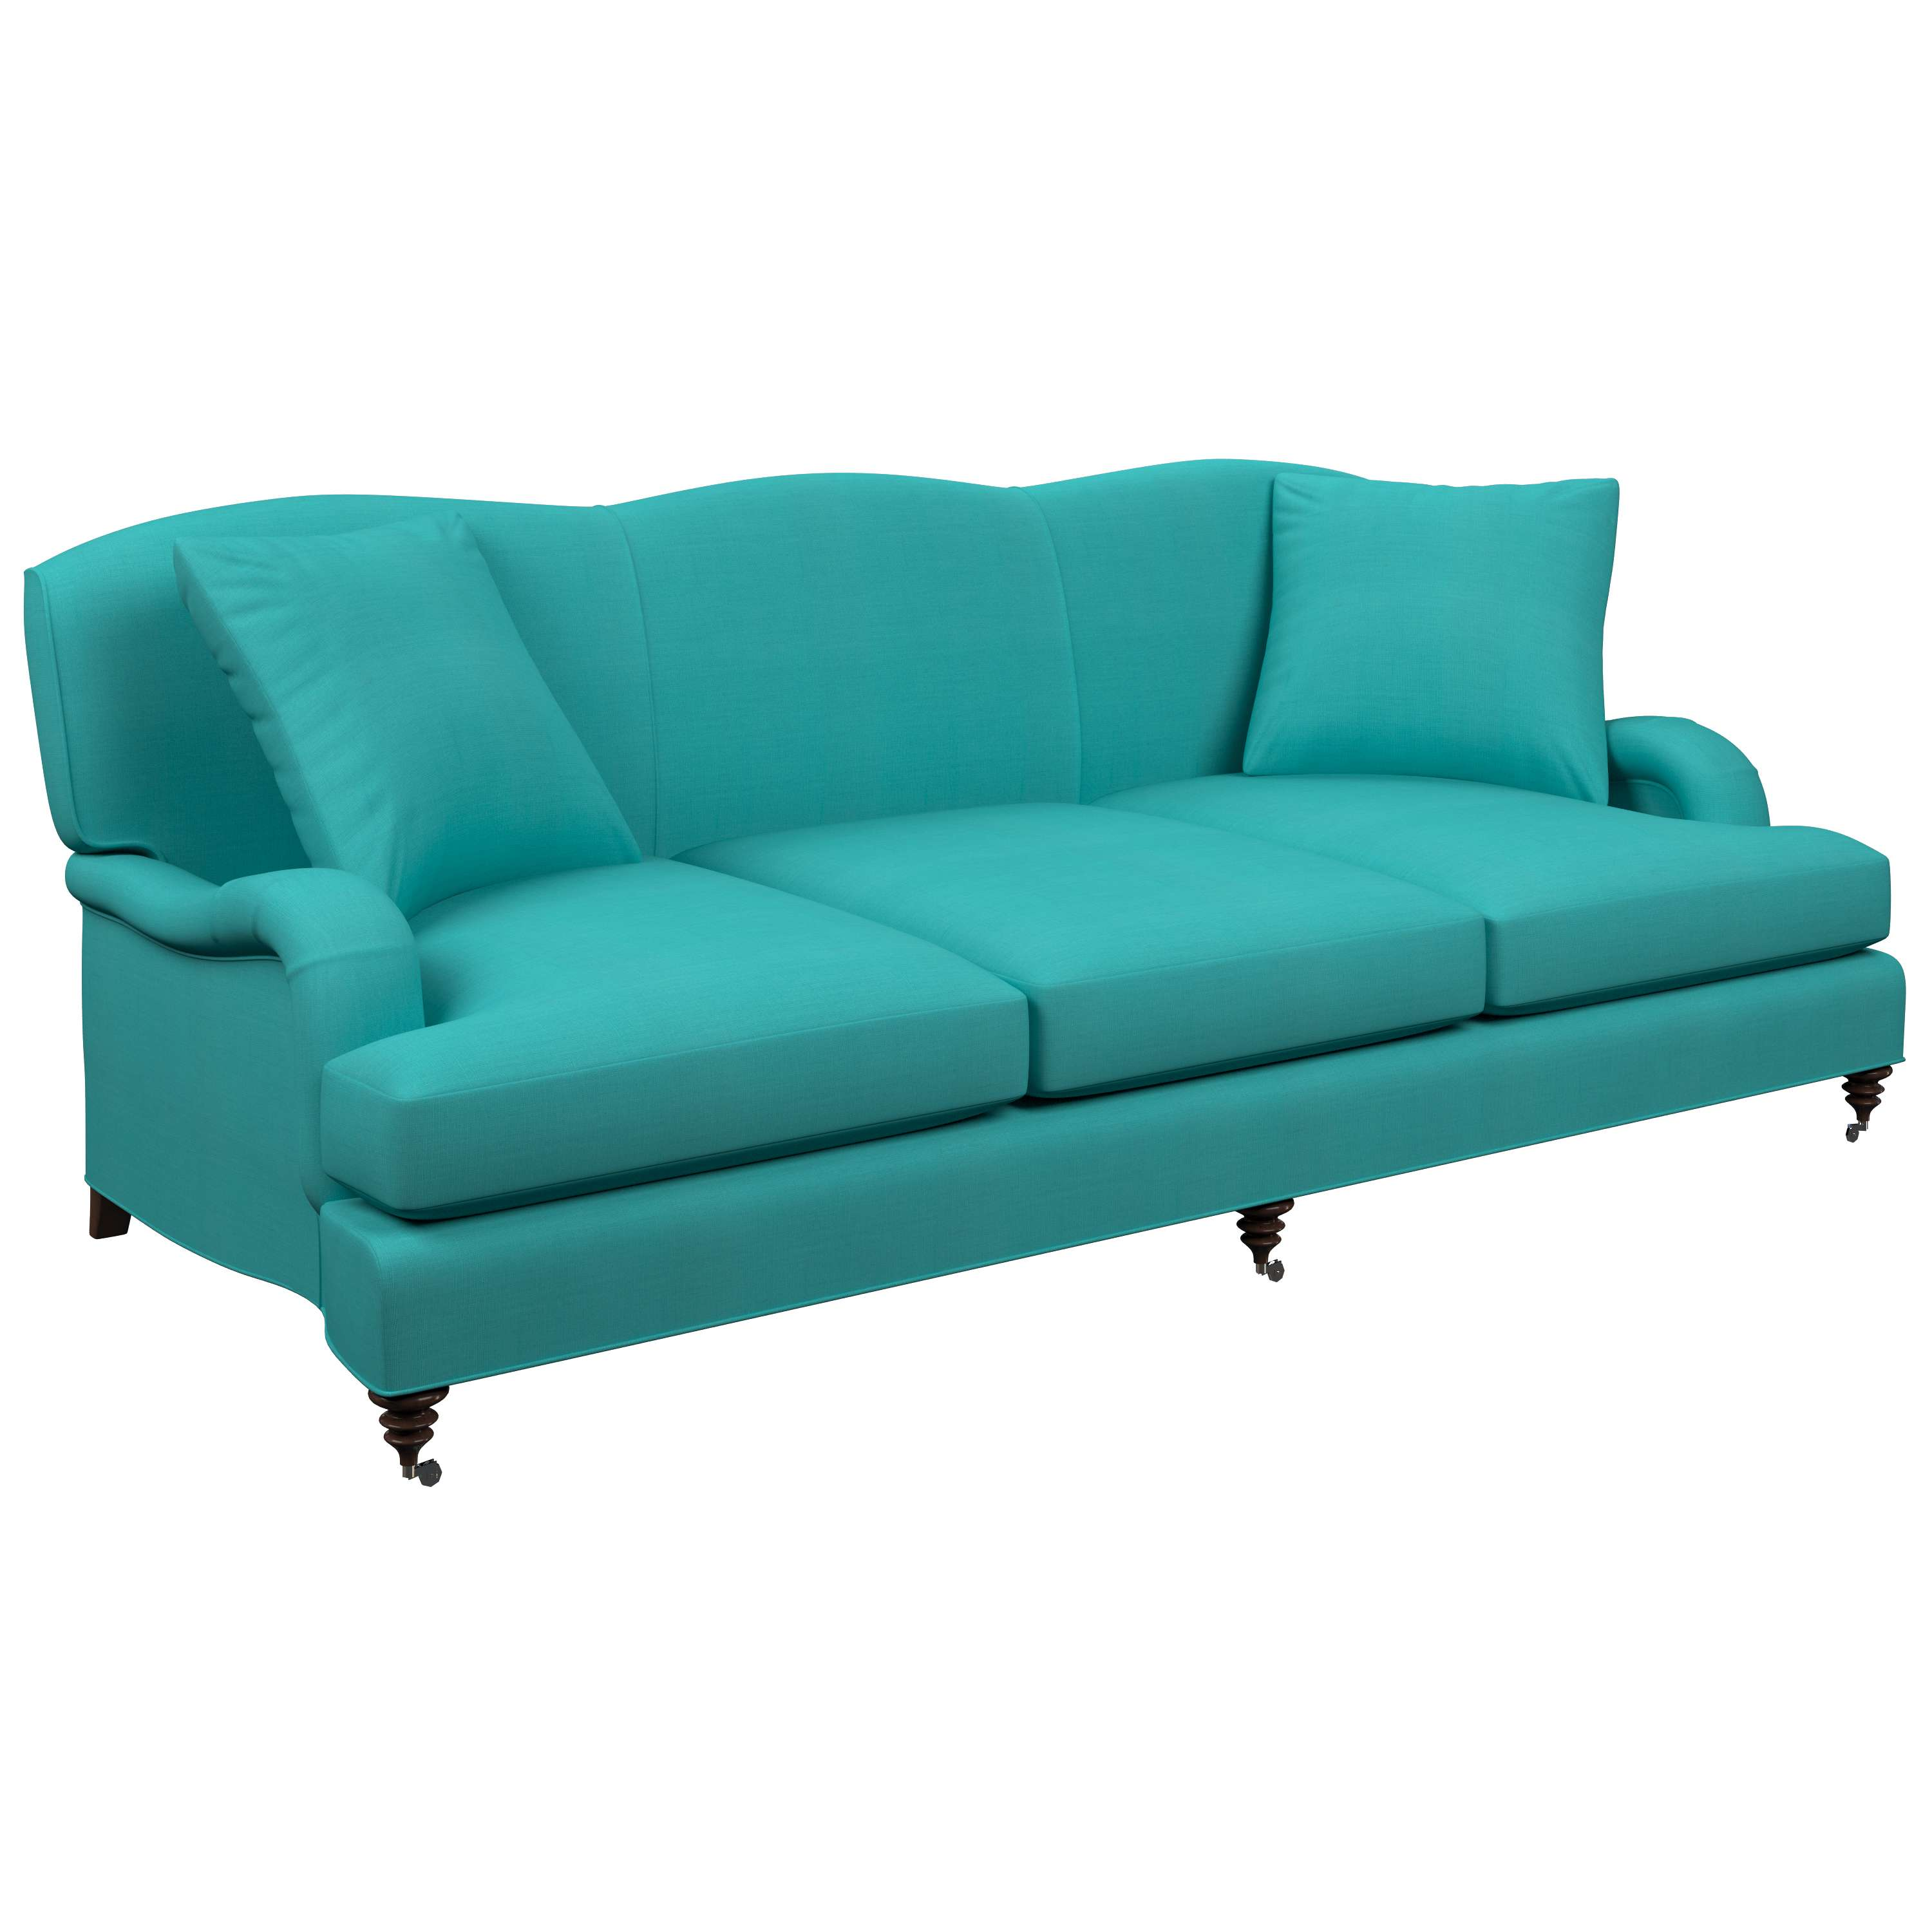 Turquoise Sectional Sofa for Sale